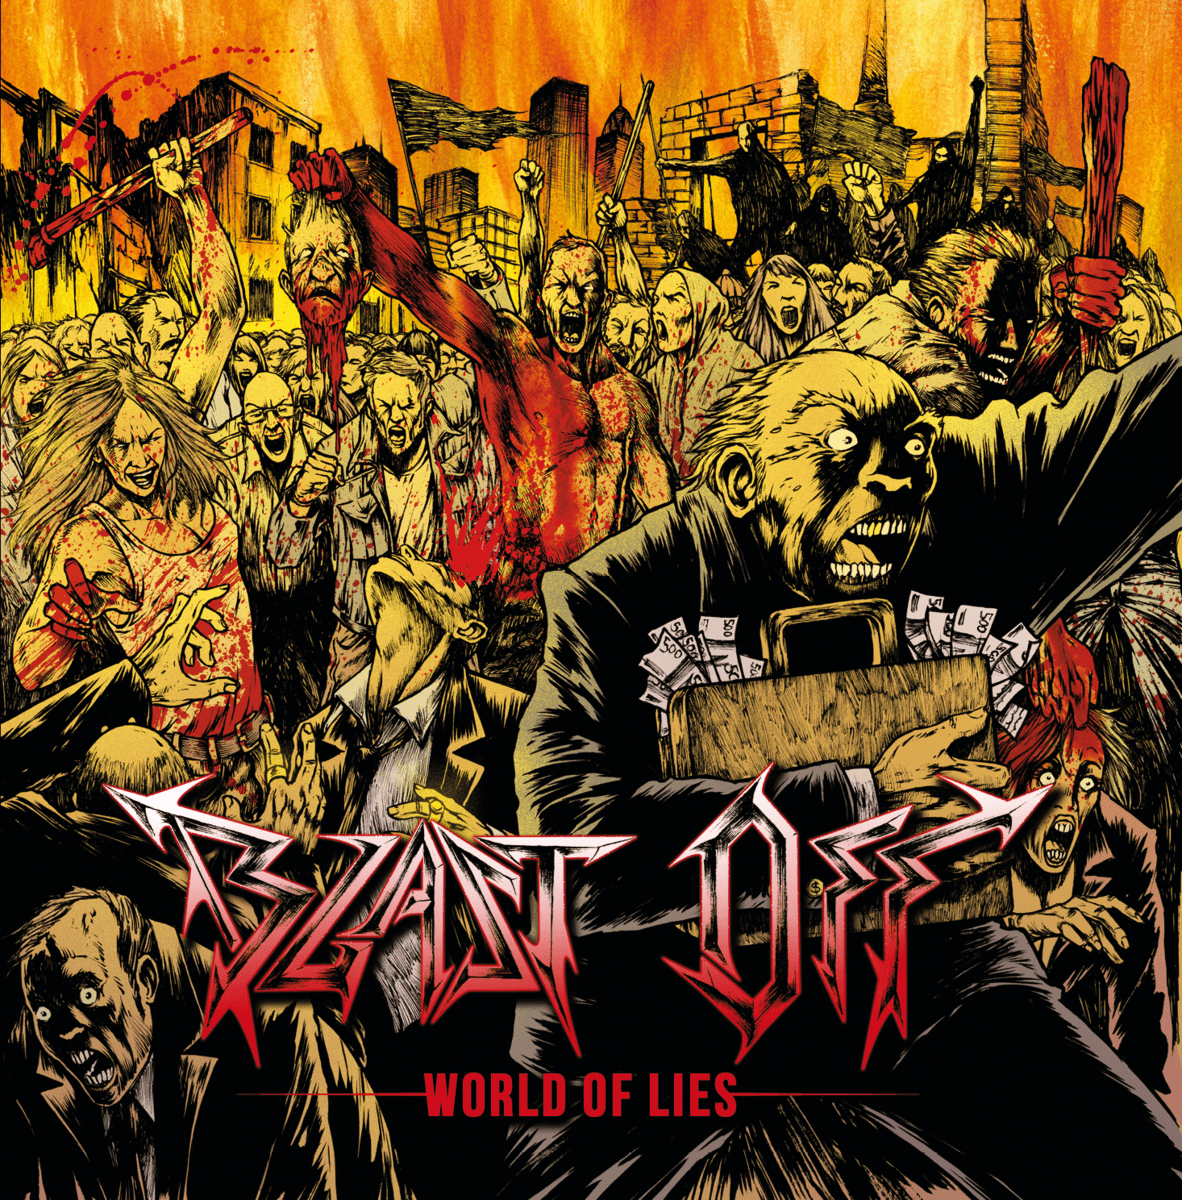 BLAST OFF – World of lies EP, 2014